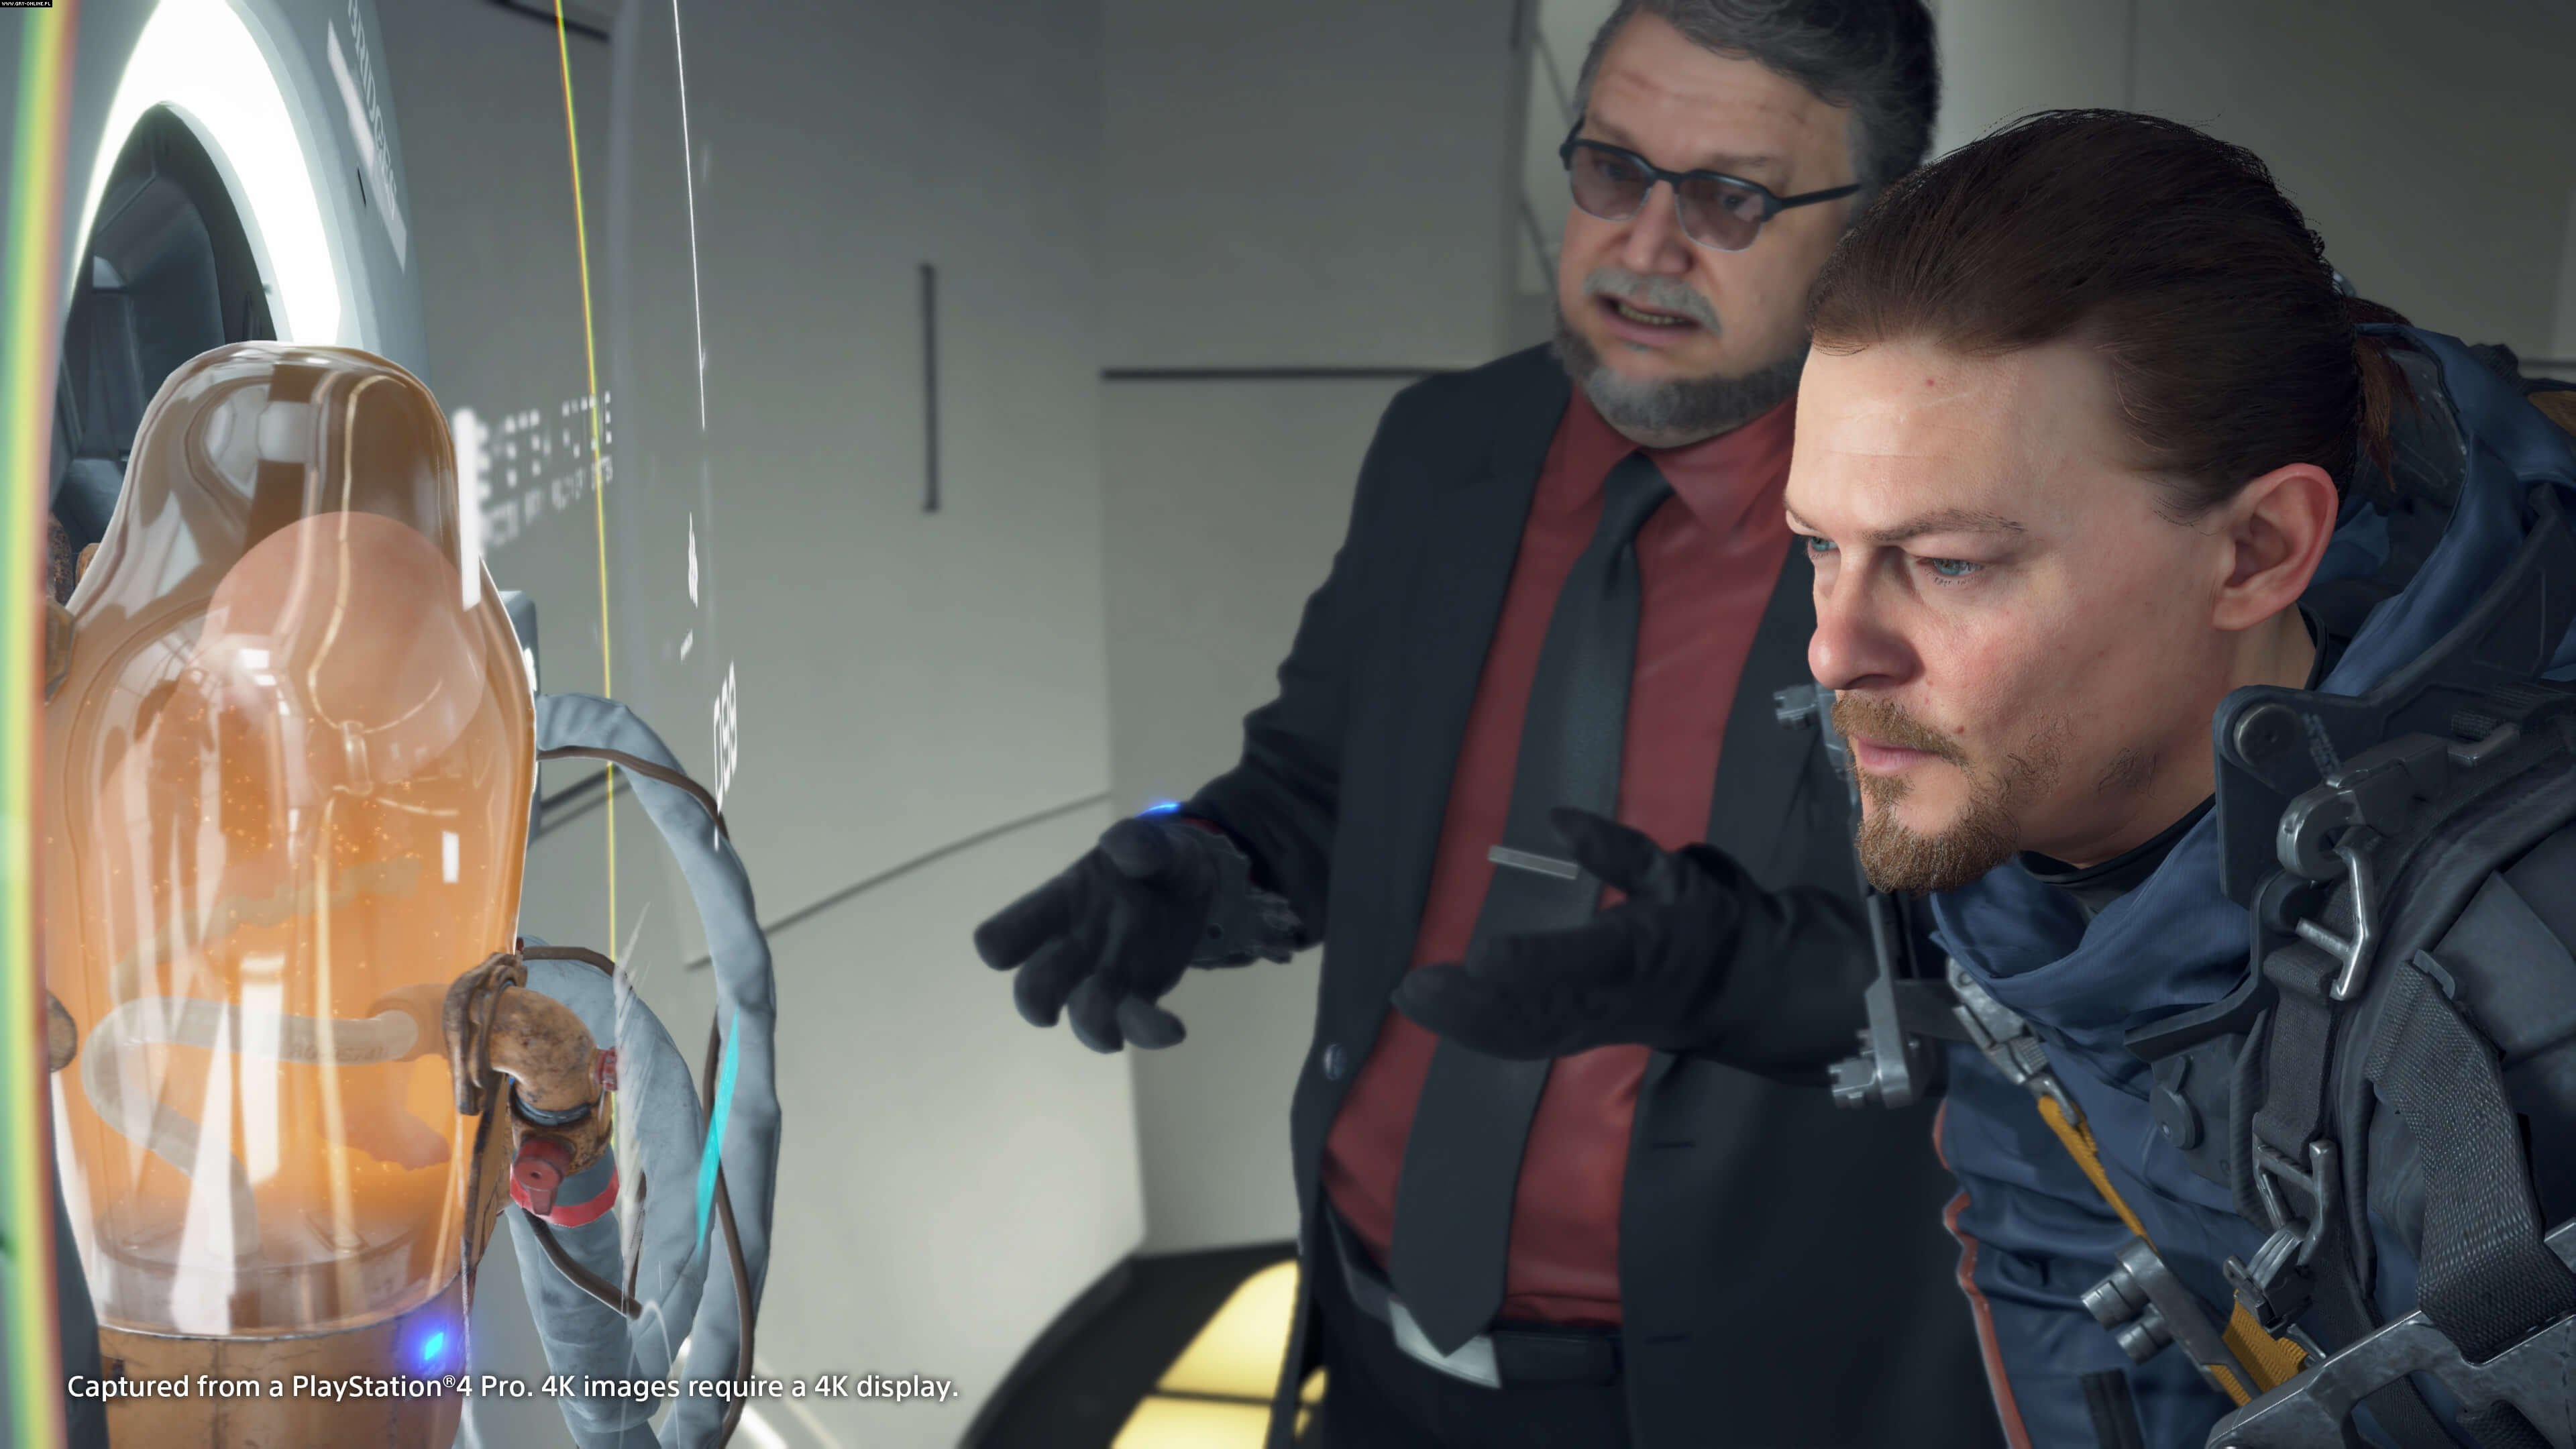 Death Stranding PC, PS4 Games Image 2/62, Kojima Productions, Sony Interactive Entertainment